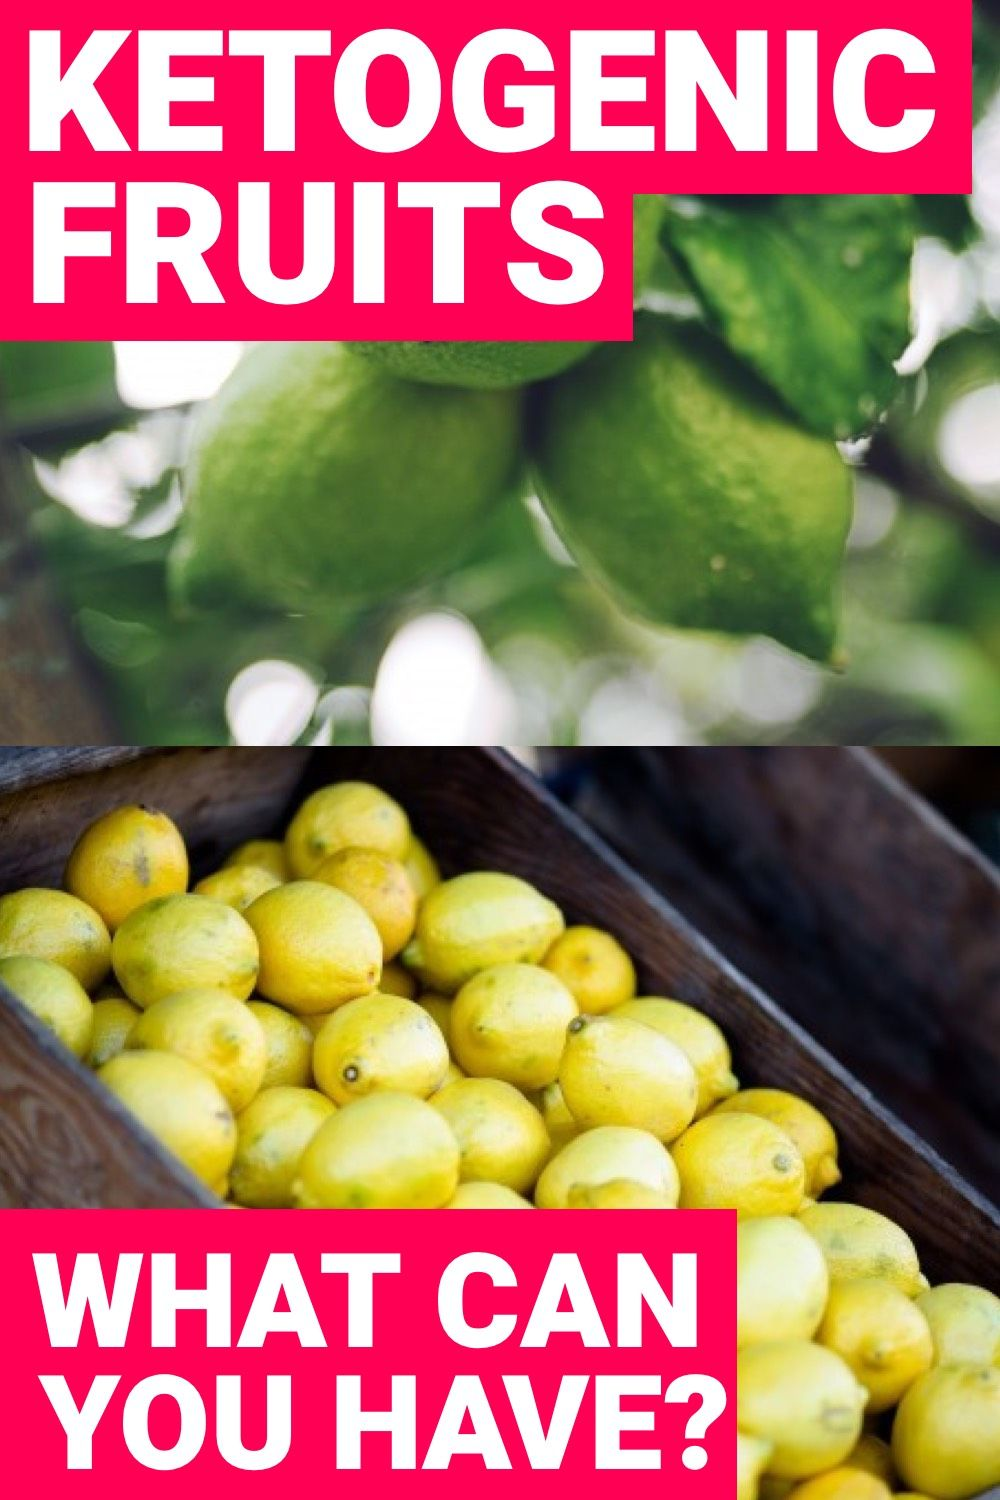 What Fruits Can You Eat on the Ketogenic Diet to Stay in